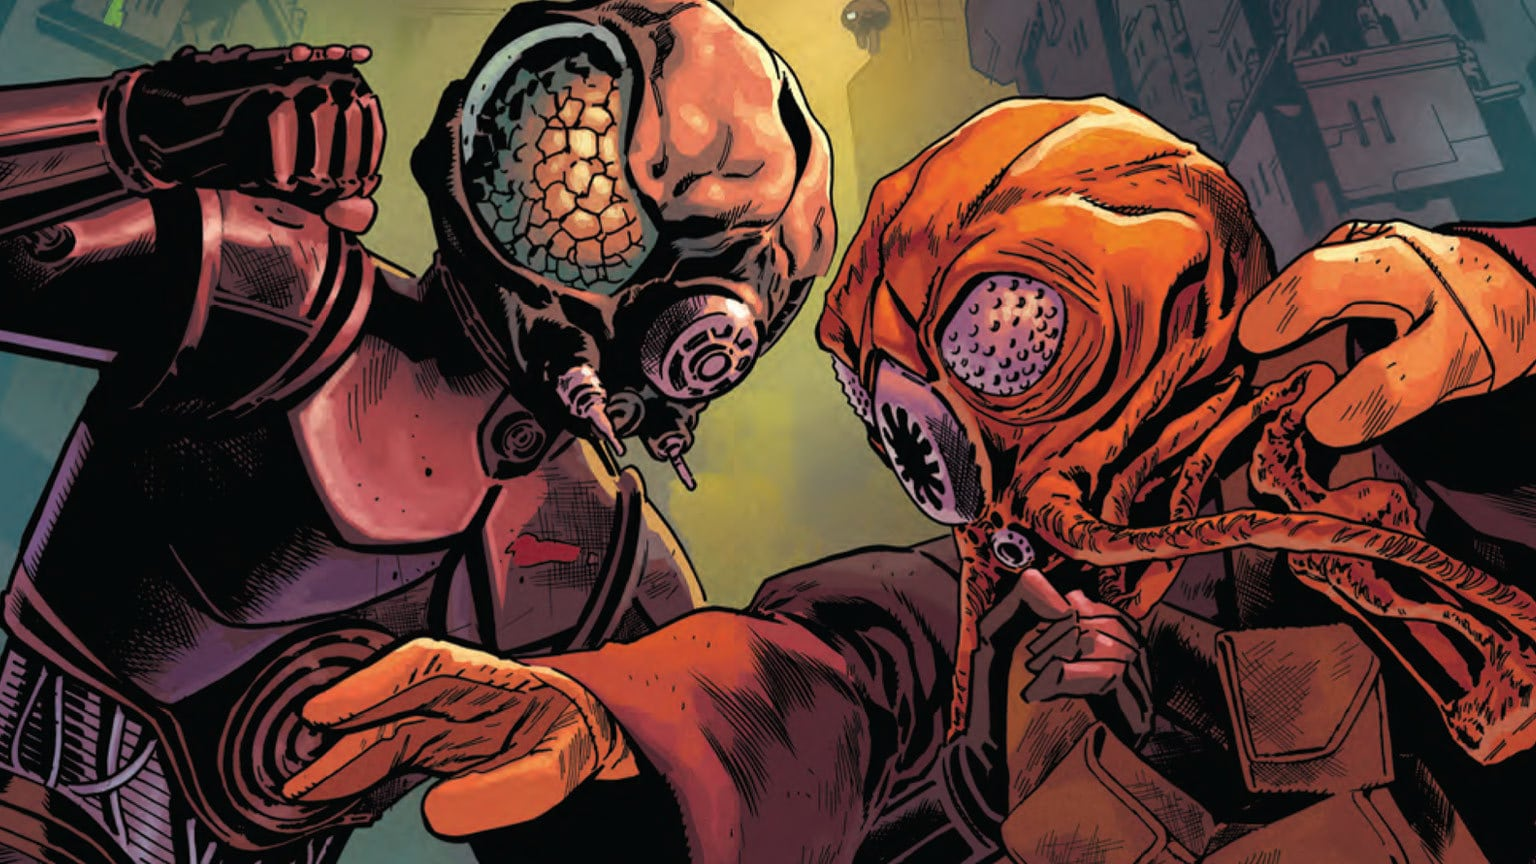 A Deadly Duo Rises in Marvel's Star Wars: War of the Bounty Hunters: 4-LOM & Zuckuss #1 - Exclusive Preview